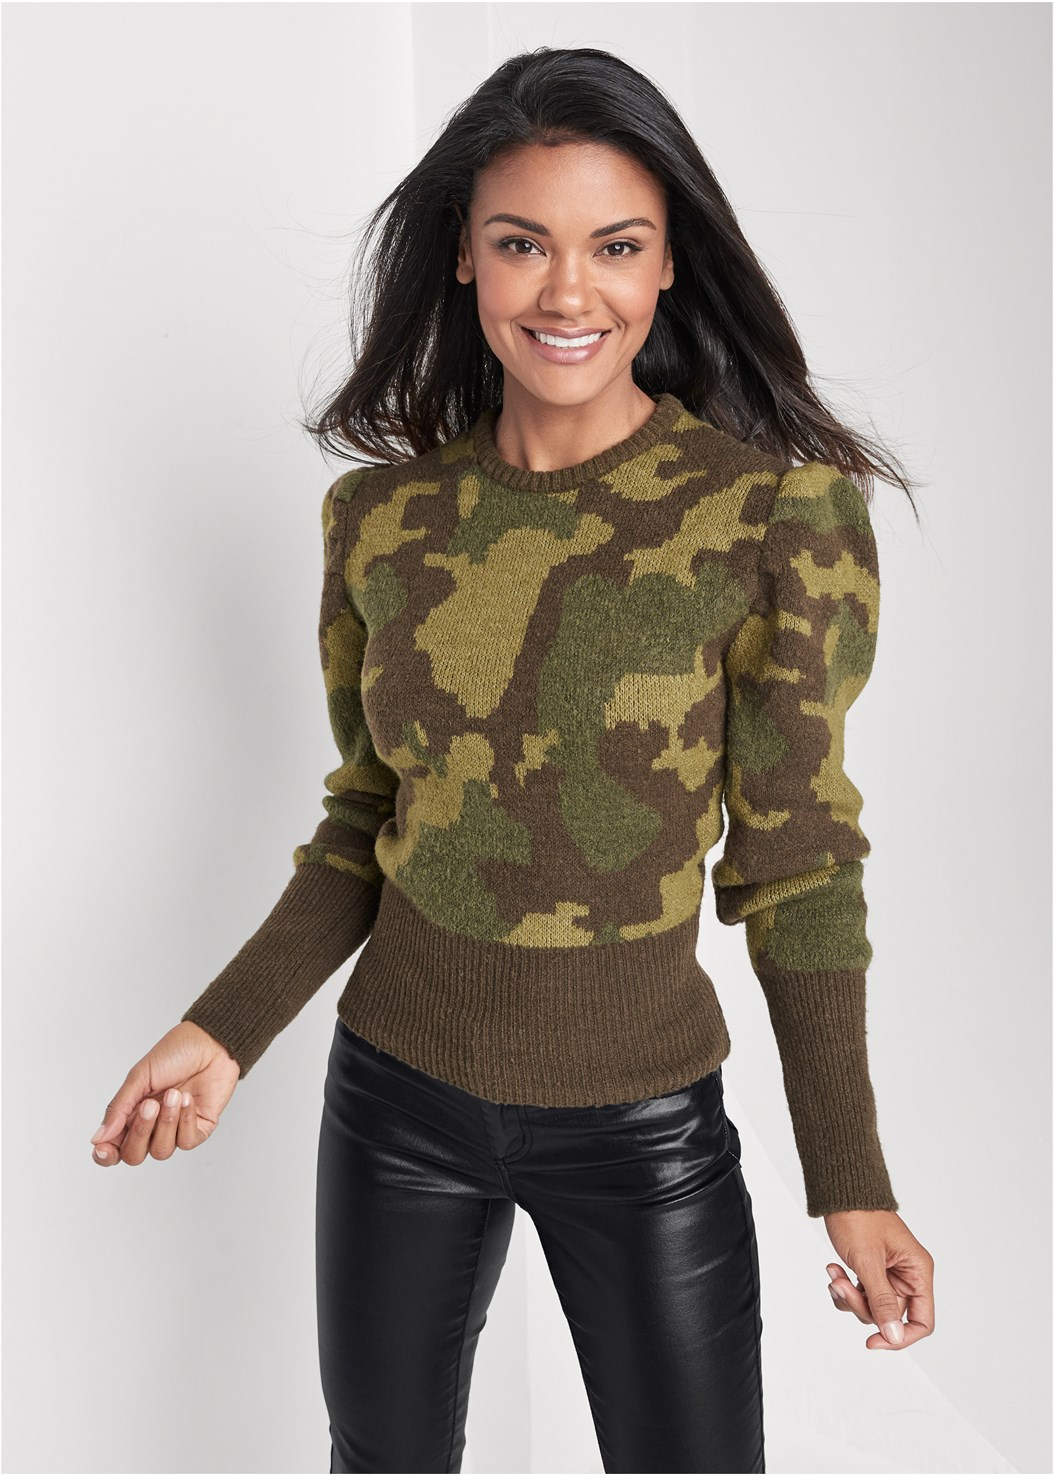 Camo Print Puff Sleeve Sweater,Faux Leather Pants,Naked T-Shirt Bra,Buckle Detail Booties